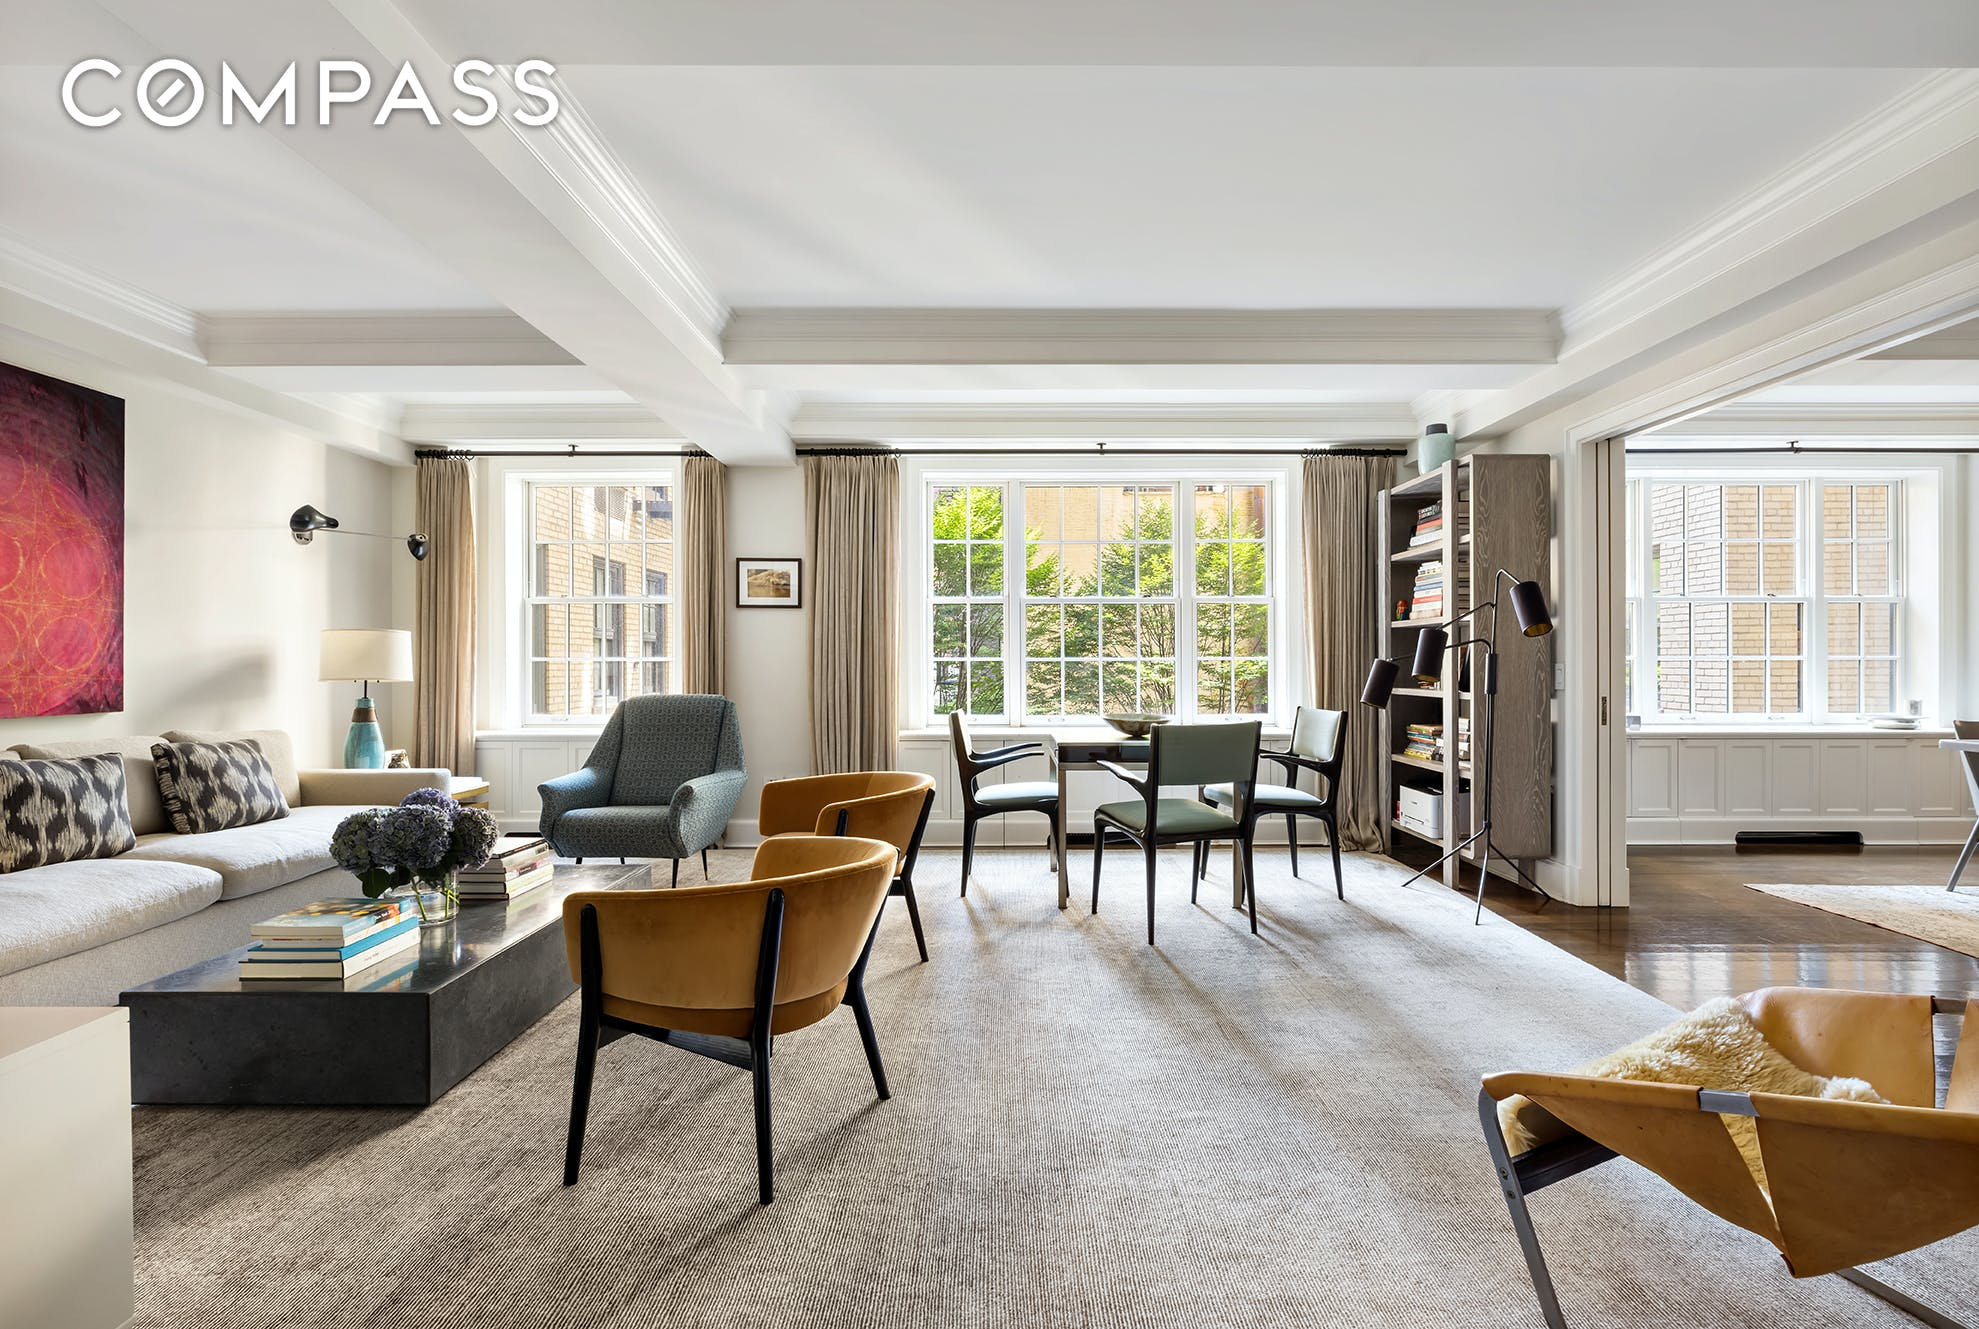 Located in a coveted full-service pre-war condominium at the center of Greenwich Village, this turn-key, 5 bedroom, 3.5 bathroom home is a perfect downtown oasis. With all the conveniences of the surrounding neighborhoods, this beautifully proportioned apartment features northern and southern exposures, hardwood floors, coffered ceilings, and top-of-the-line finishes throughout. Originally designed by Victoria Hagan, the home has many significant upgrades and is perfectly renovated.  The apartment opens to a welcoming entry foyer with a coat closet. Beyond the foyer are the entertaining rooms, which can be divided by pocket doors for privacy or opened as a 'great room' for larger gatherings or casual day to day living. The south-facing living and dining rooms overlook beautiful trees in the building's landscaped courtyard, and have ample space for multiple seating areas. The windowed kitchen features custom cabinetry and top-of-the-line appliances, including a Sub-Zero refrigerator, 48' Wolf range with griddle, and Sub-Zero wine refrigerator. The kitchen island has counter seating for three.  Opposite the entertaining rooms, the spacious primary bedroom suite features leafy views over 10th Street, a walk-in closet, and an en-suite bath with a double vanity. Down the hall, four additional bedrooms share two jack-and-jill bathrooms. One of the bedrooms is currently being used as a den/media room, but could also function as a perfect home office or guest suite. A powder room and utility closet with washer/dryer complete this home's perfect layout.  Built in 1928, Devonshire House is a pre-war condominium designed by Emery Roth and comprising 96 units over 15 stories, with interior finishes by Victoria Hagan. Amenities include a full-time doorman, live-in superintendent, fitness center, children's playroom, bike room, refrigerated storage, and a landscaped rooftop terrace. 28 East 10th Street is at the heart of everything downtown Manhattan has to offer, convenient to W